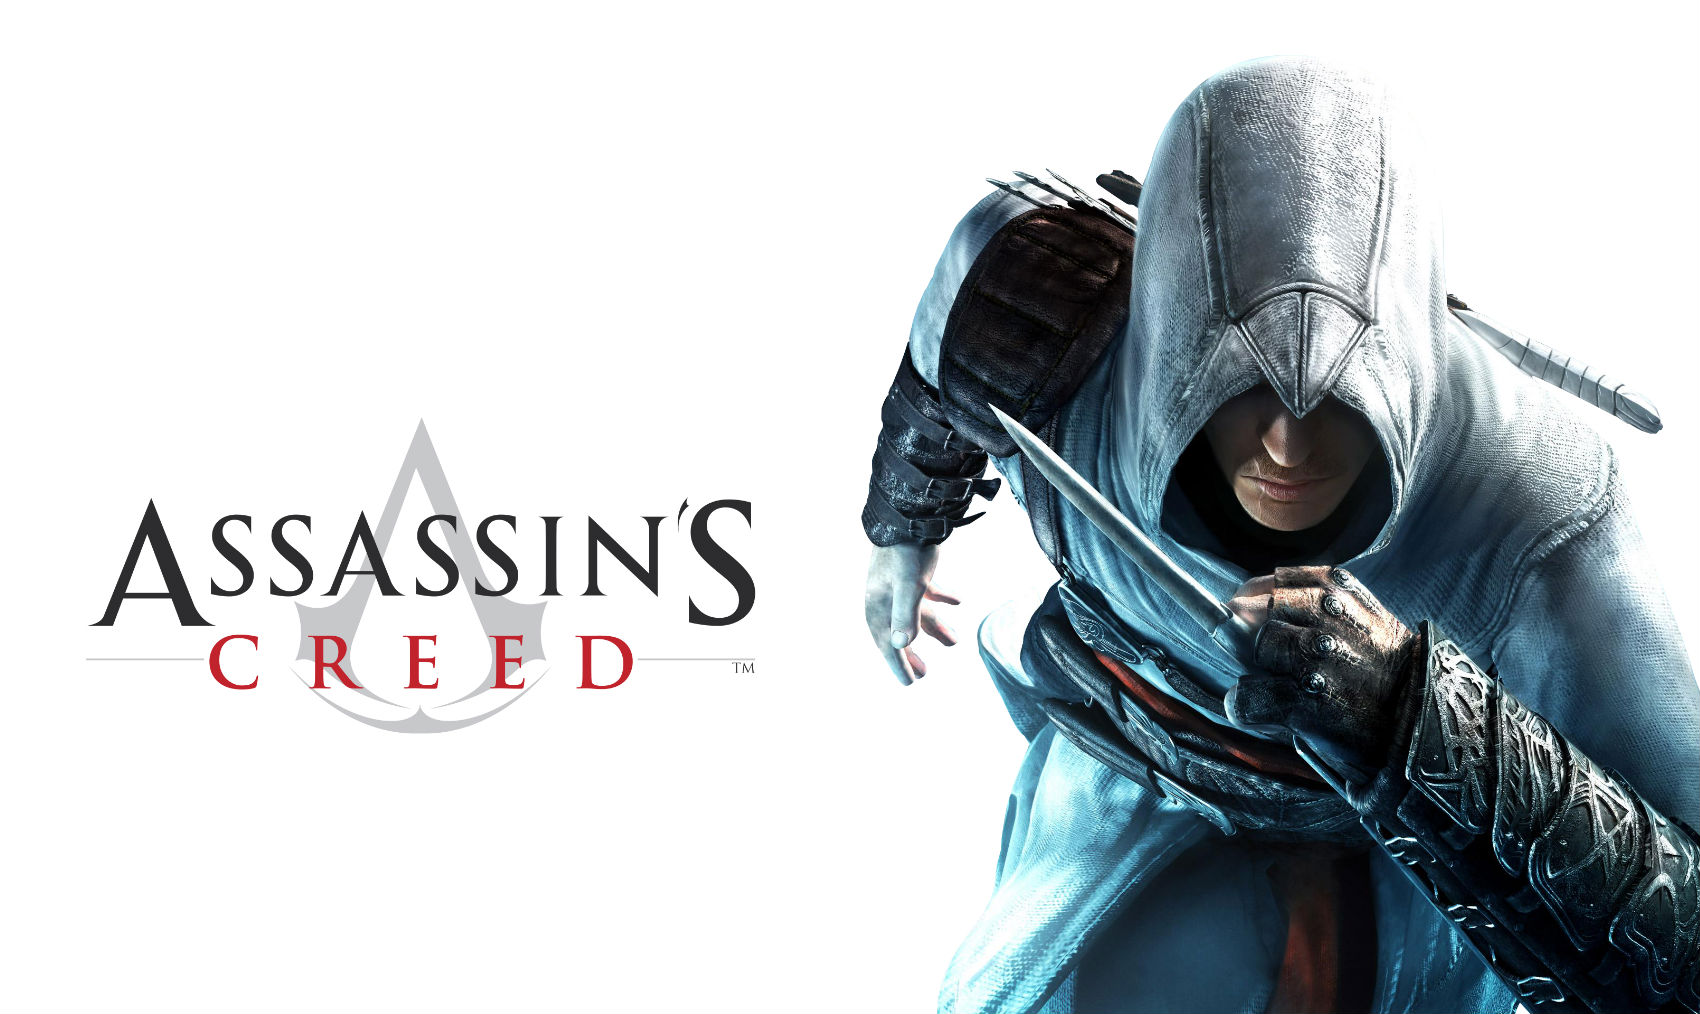 Game News: Assassin's Creed movie now in production and ...